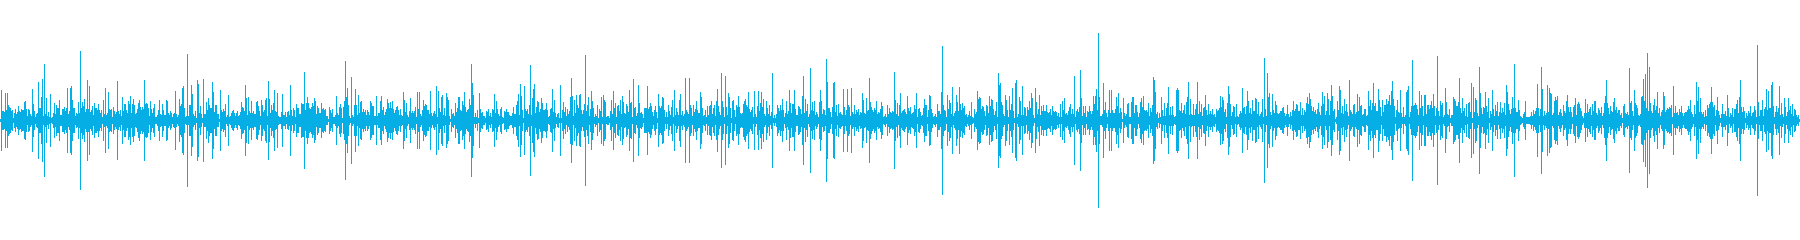 Rippling water's reproduced waveform